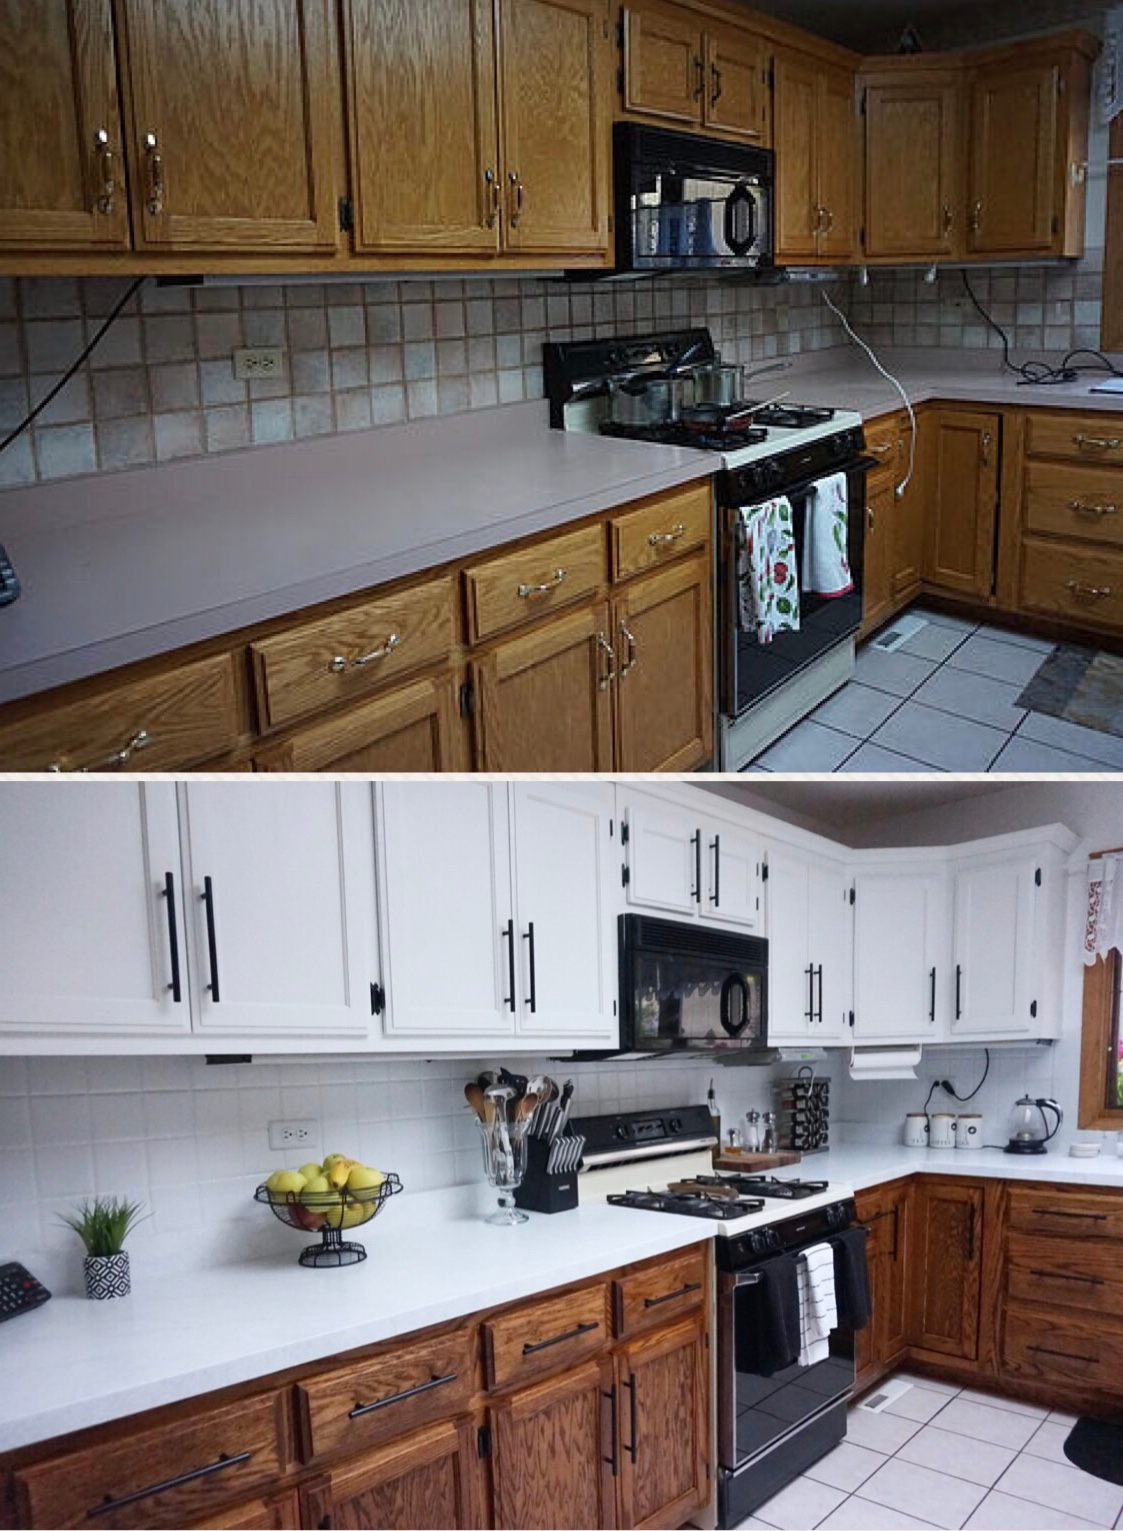 How I Painted My Cabinets Without Sanding Video In 2020 Stained Kitchen Cabinets Painting Kitchen Cabinets White New Kitchen Cabinets